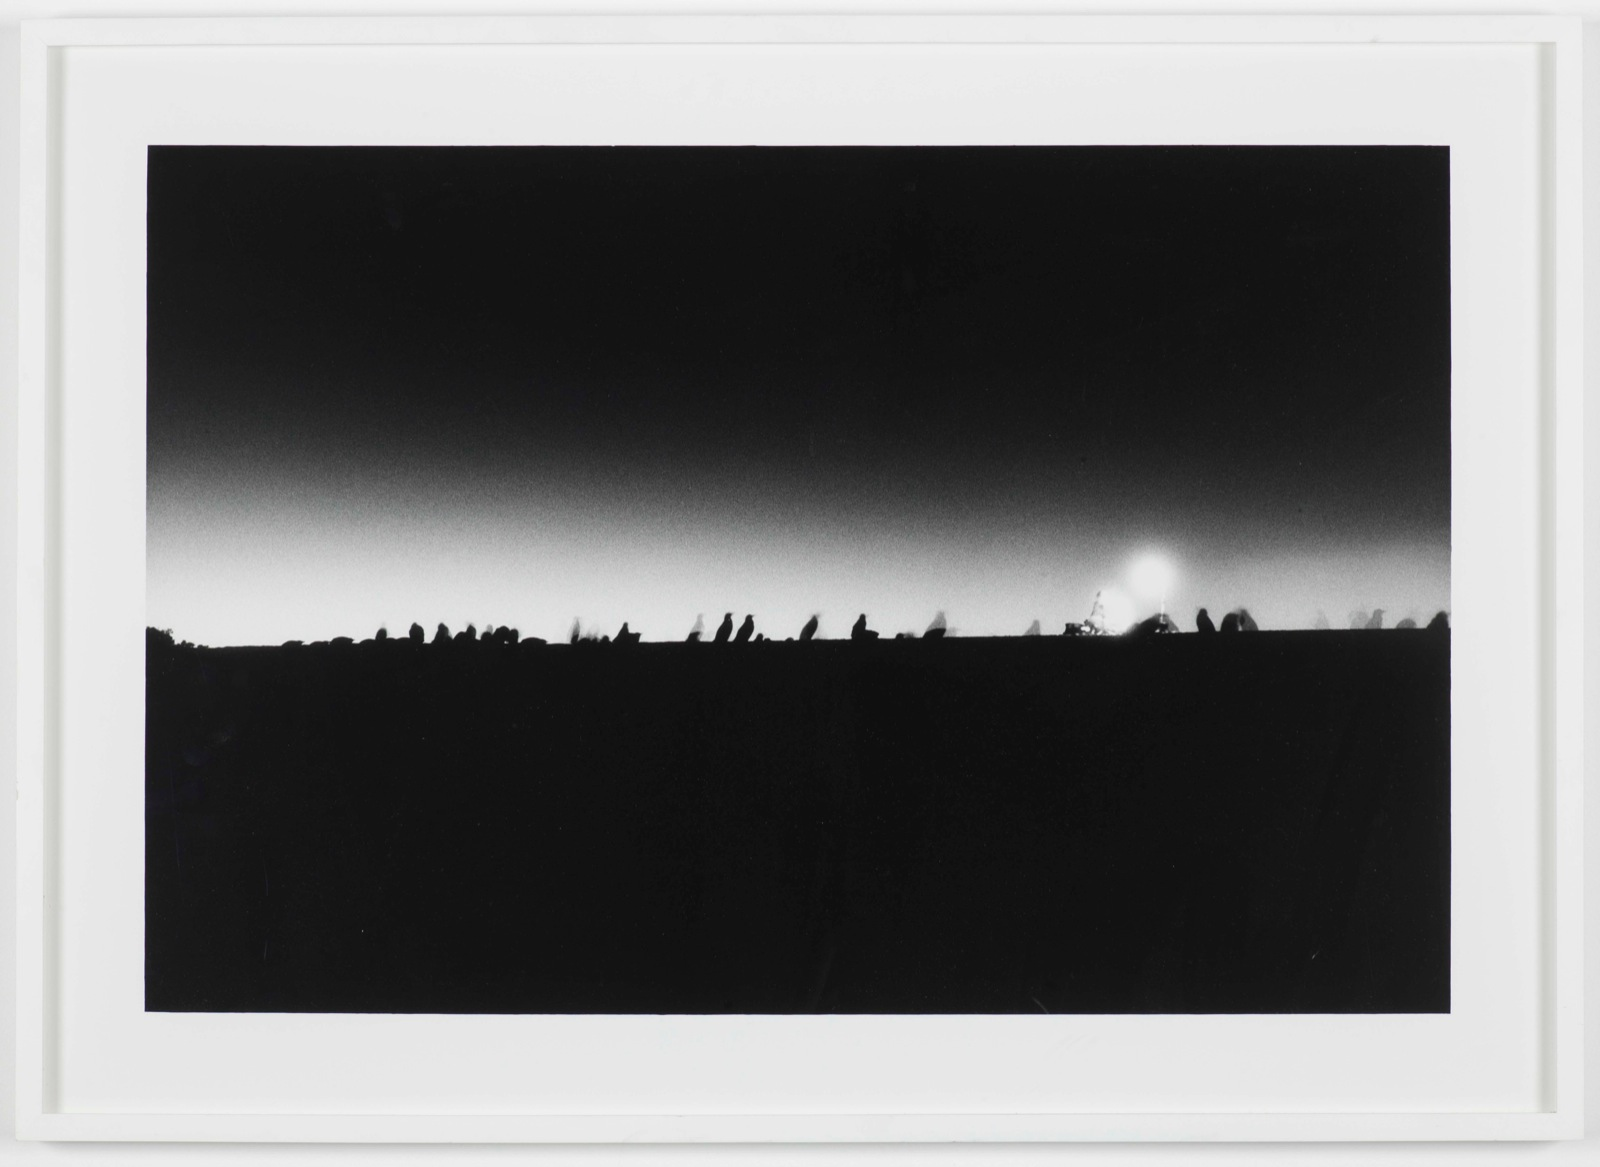 Philippe Parreno, Speaking to the Penguins, 2007, Bblack-and-white infrared photograph, mounted on aluminum and framed in perspex, 133 x 200 cm